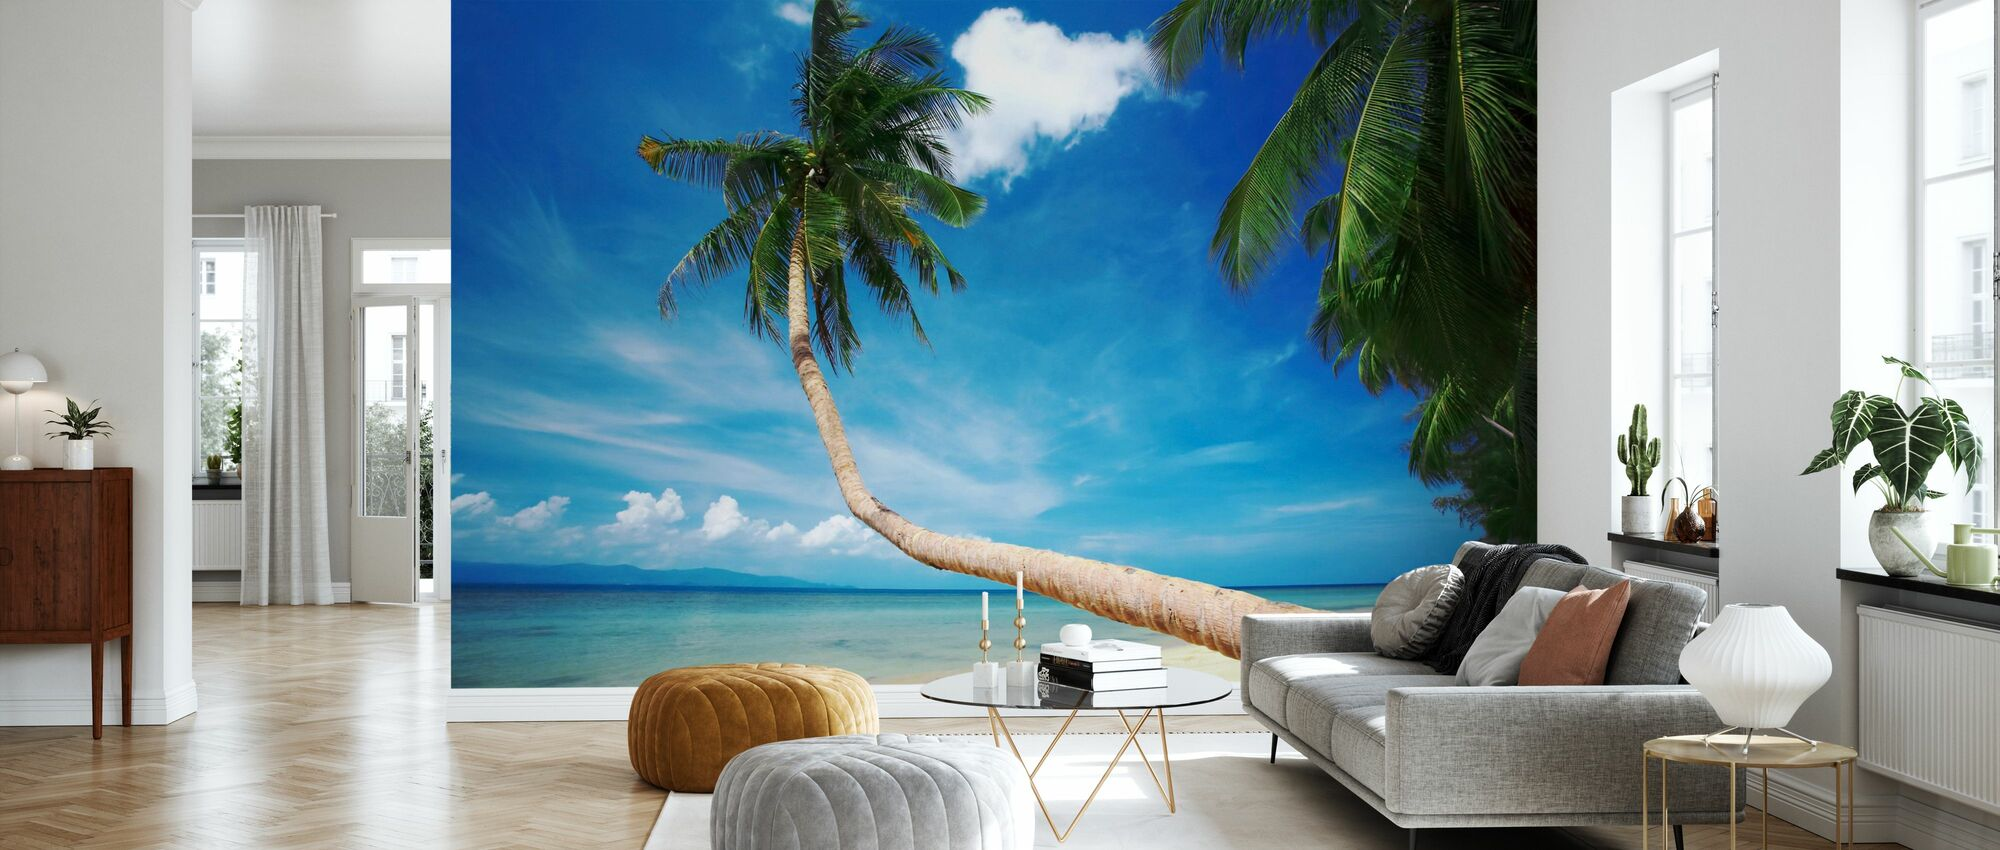 Palm and Bliss - Wallpaper - Living Room